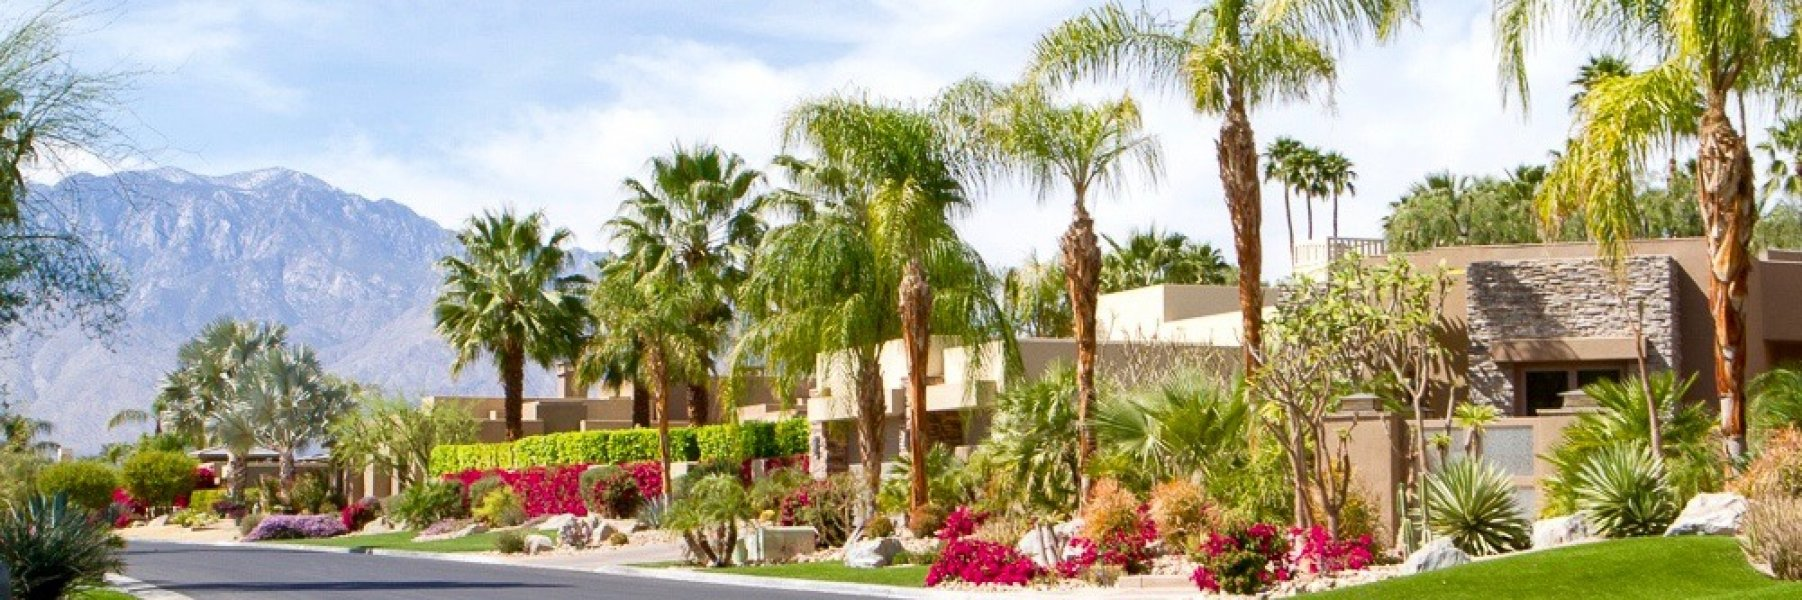 Artisan is a community of homes in Rancho Mirage California